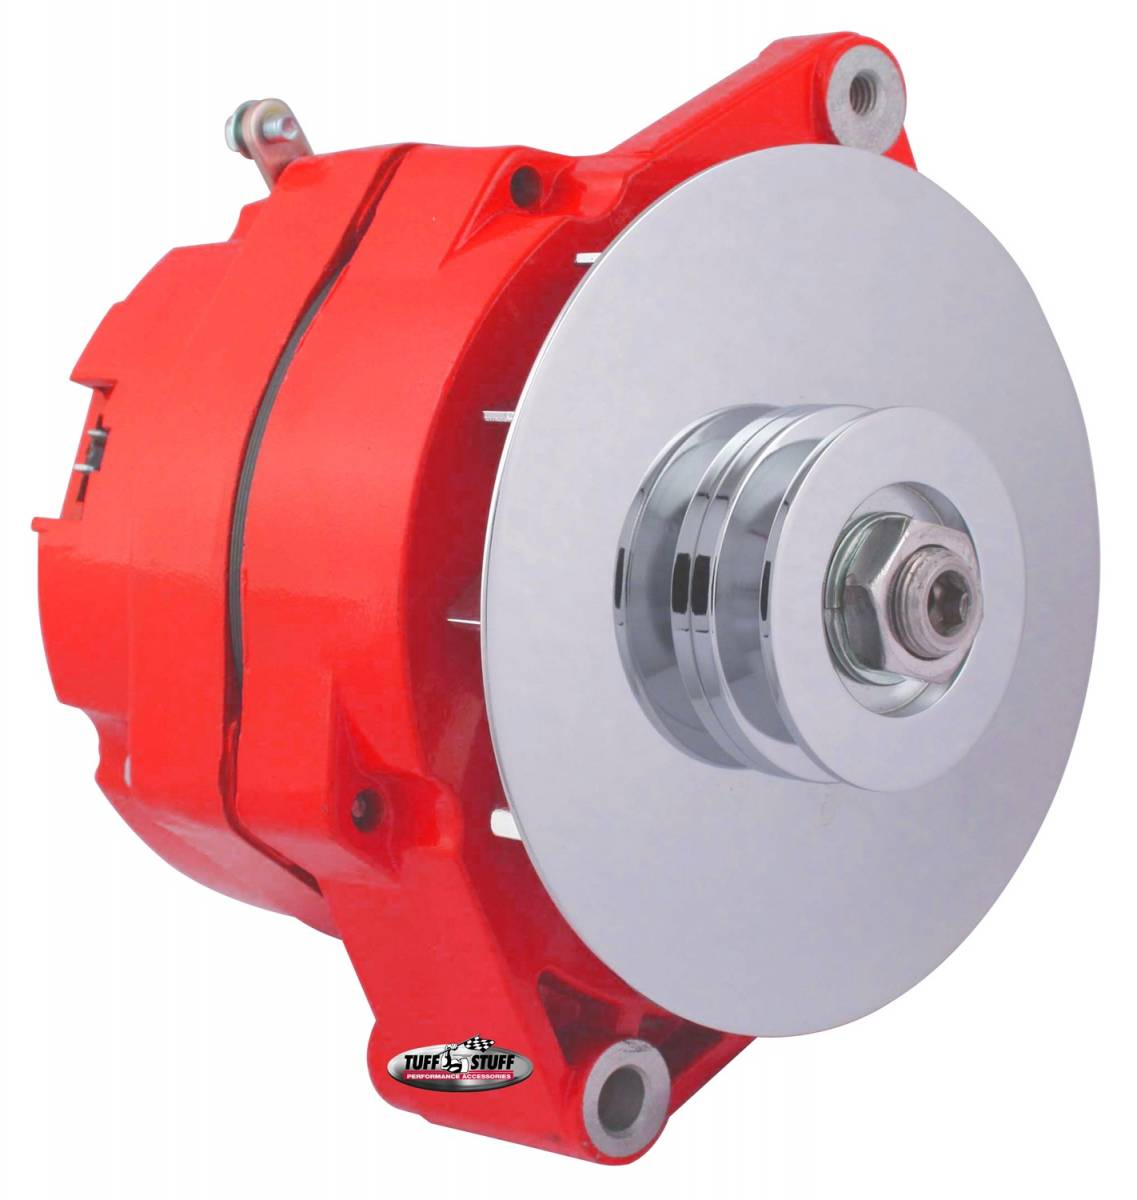 Tuff Stuff Performance - Alternator 80 AMP OEM Wire 10si Case V Groove Pulley External Regulator Red Powdercoat w/Chrome Accents Must Be Used With An External Solid State Voltage Regulator 7102NFRED